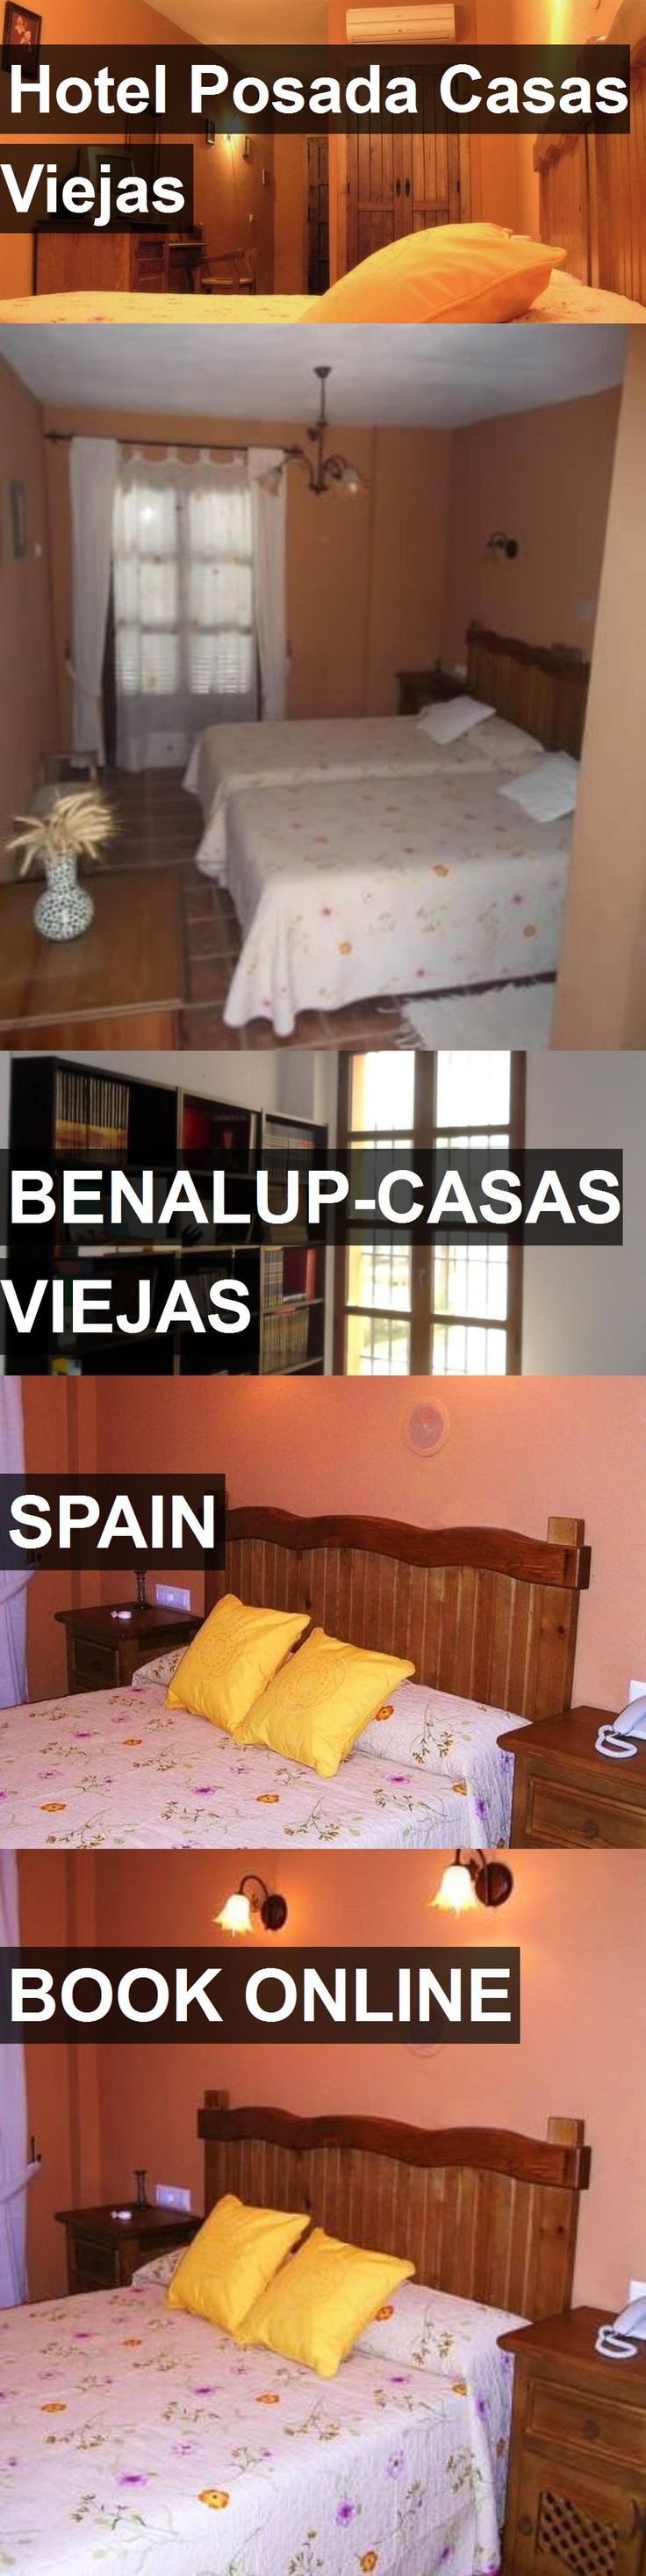 Hotel Hotel Posada Casas Viejas in Benalup-Casas Viejas, Spain. For more information, photos, reviews and best prices please follow the link. #Spain #Benalup-CasasViejas #HotelPosadaCasasViejas #hotel #travel #vacation